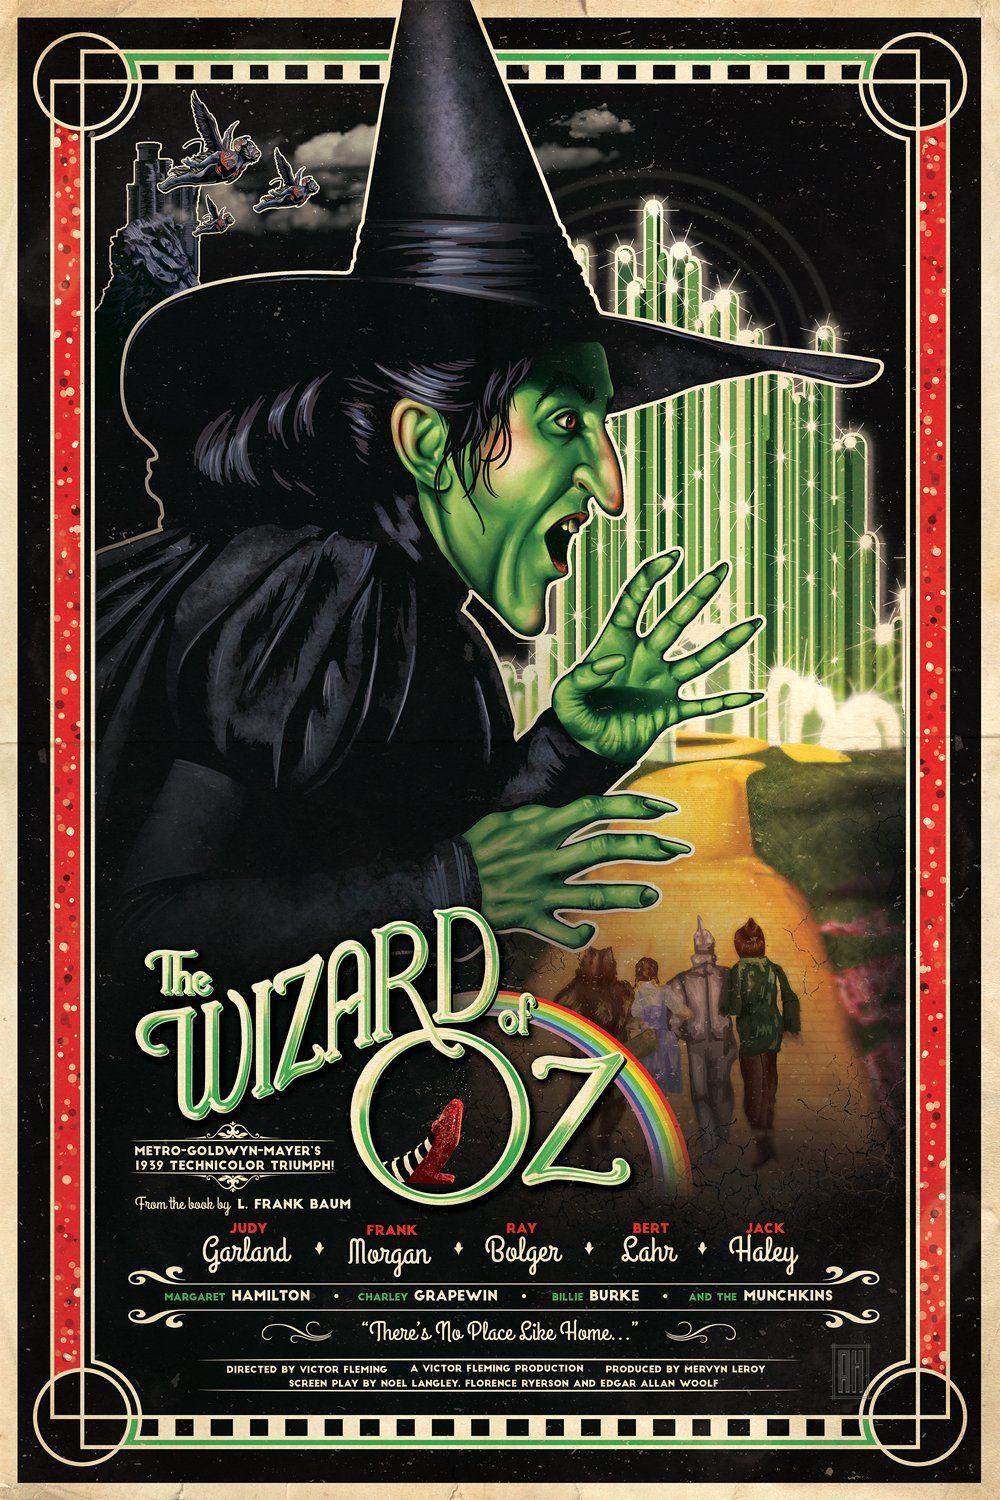 The Wizard of Oz (1939) HD Wallpaper From